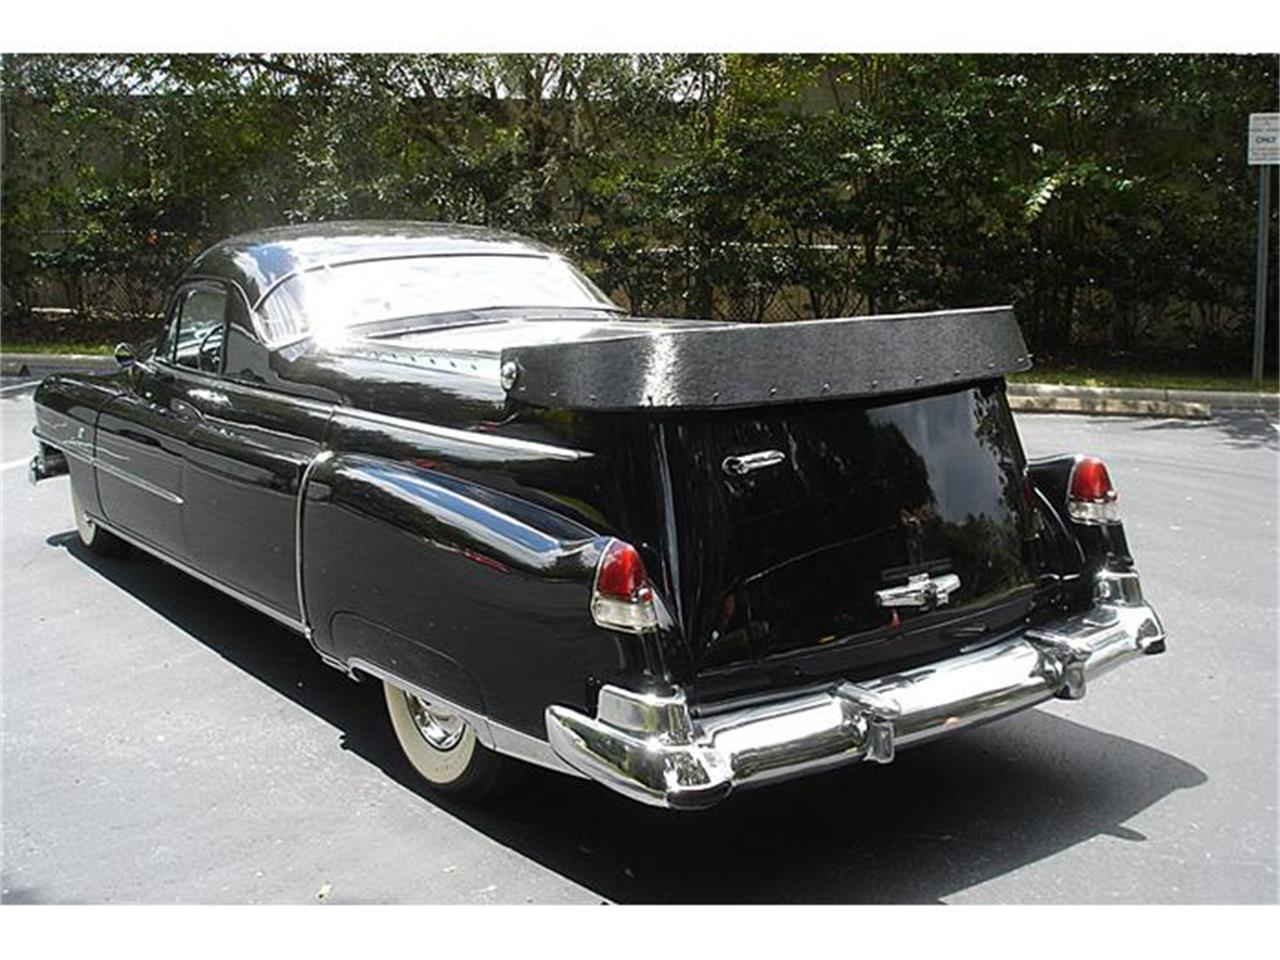 Large Picture of 1952 Cadillac S&S Florentine located in Florida - $96,000.00 Offered by Classic Dreamcars, Inc. - FL81